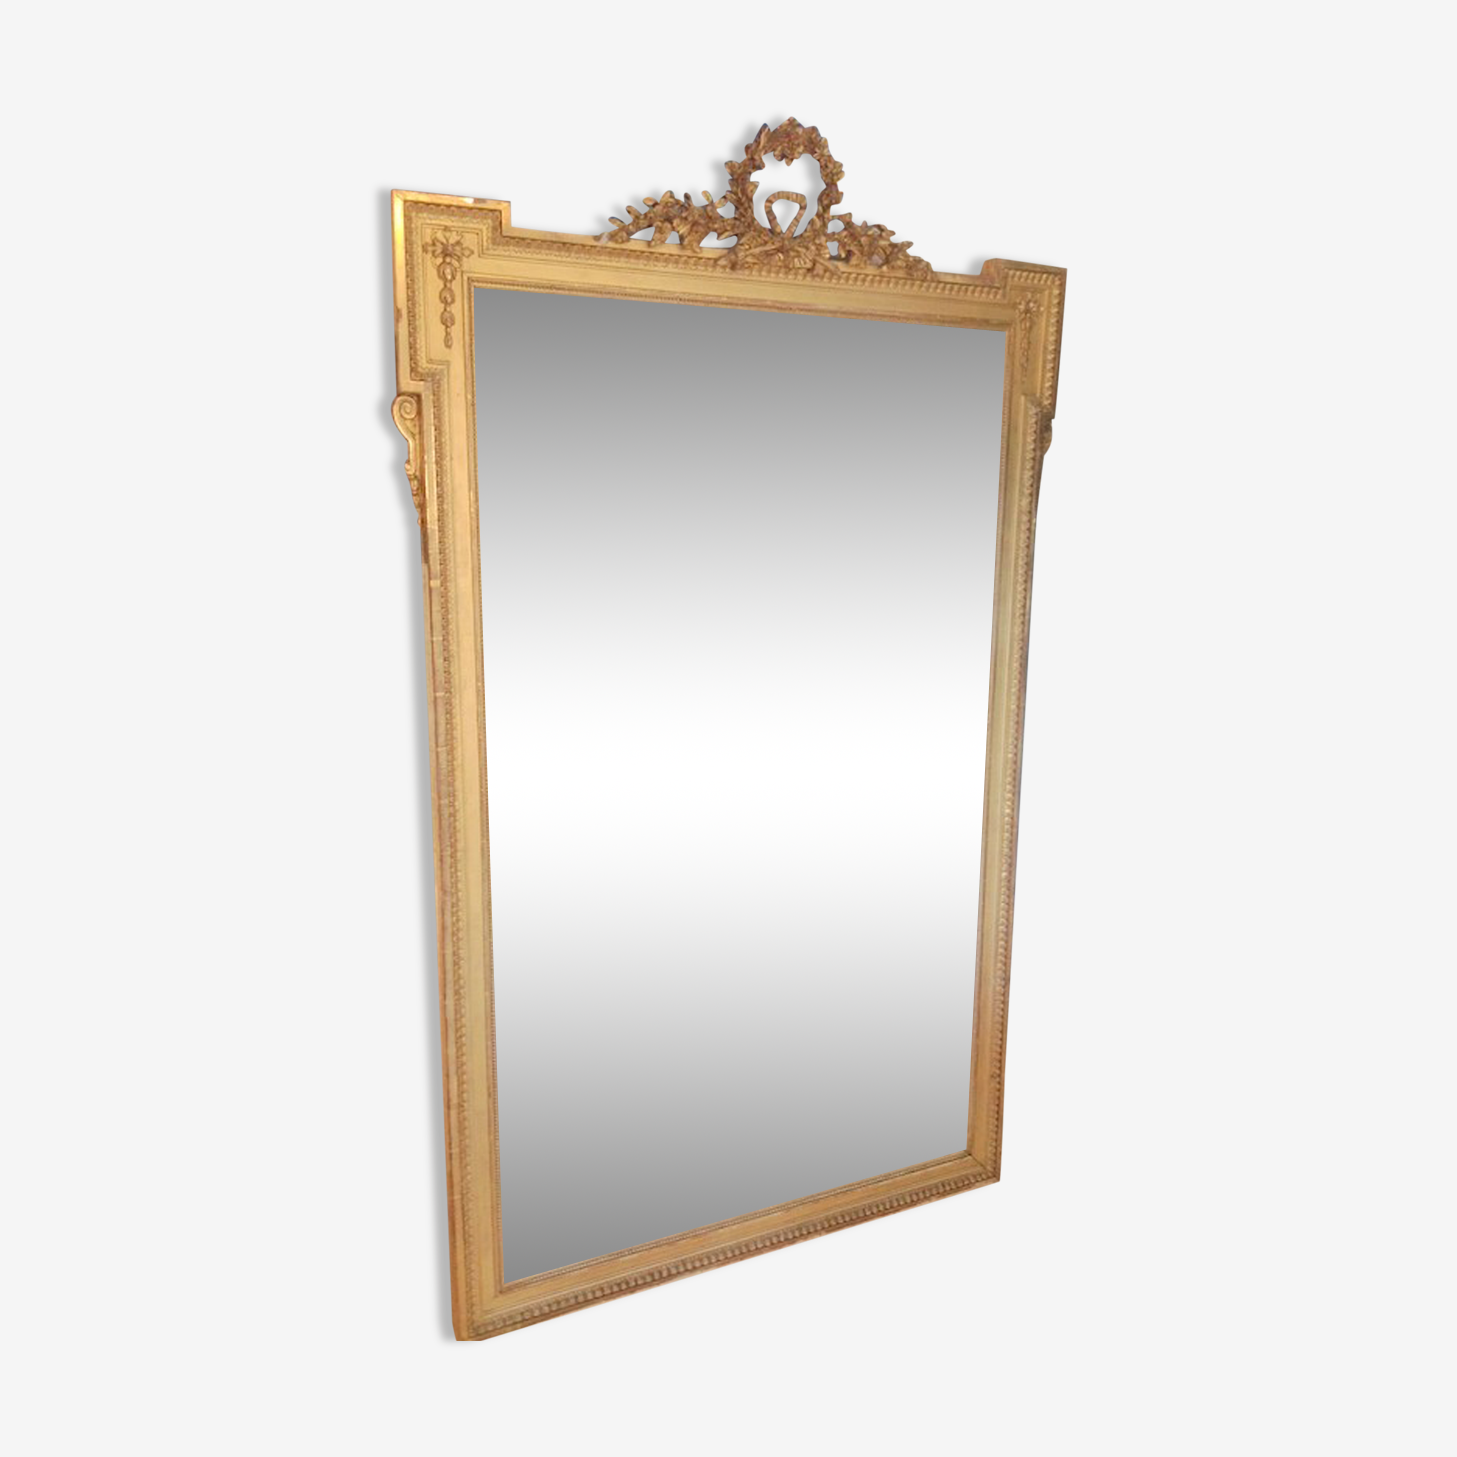 Large mirror 190 x 90 cm wooden frame dore Louis XVI style